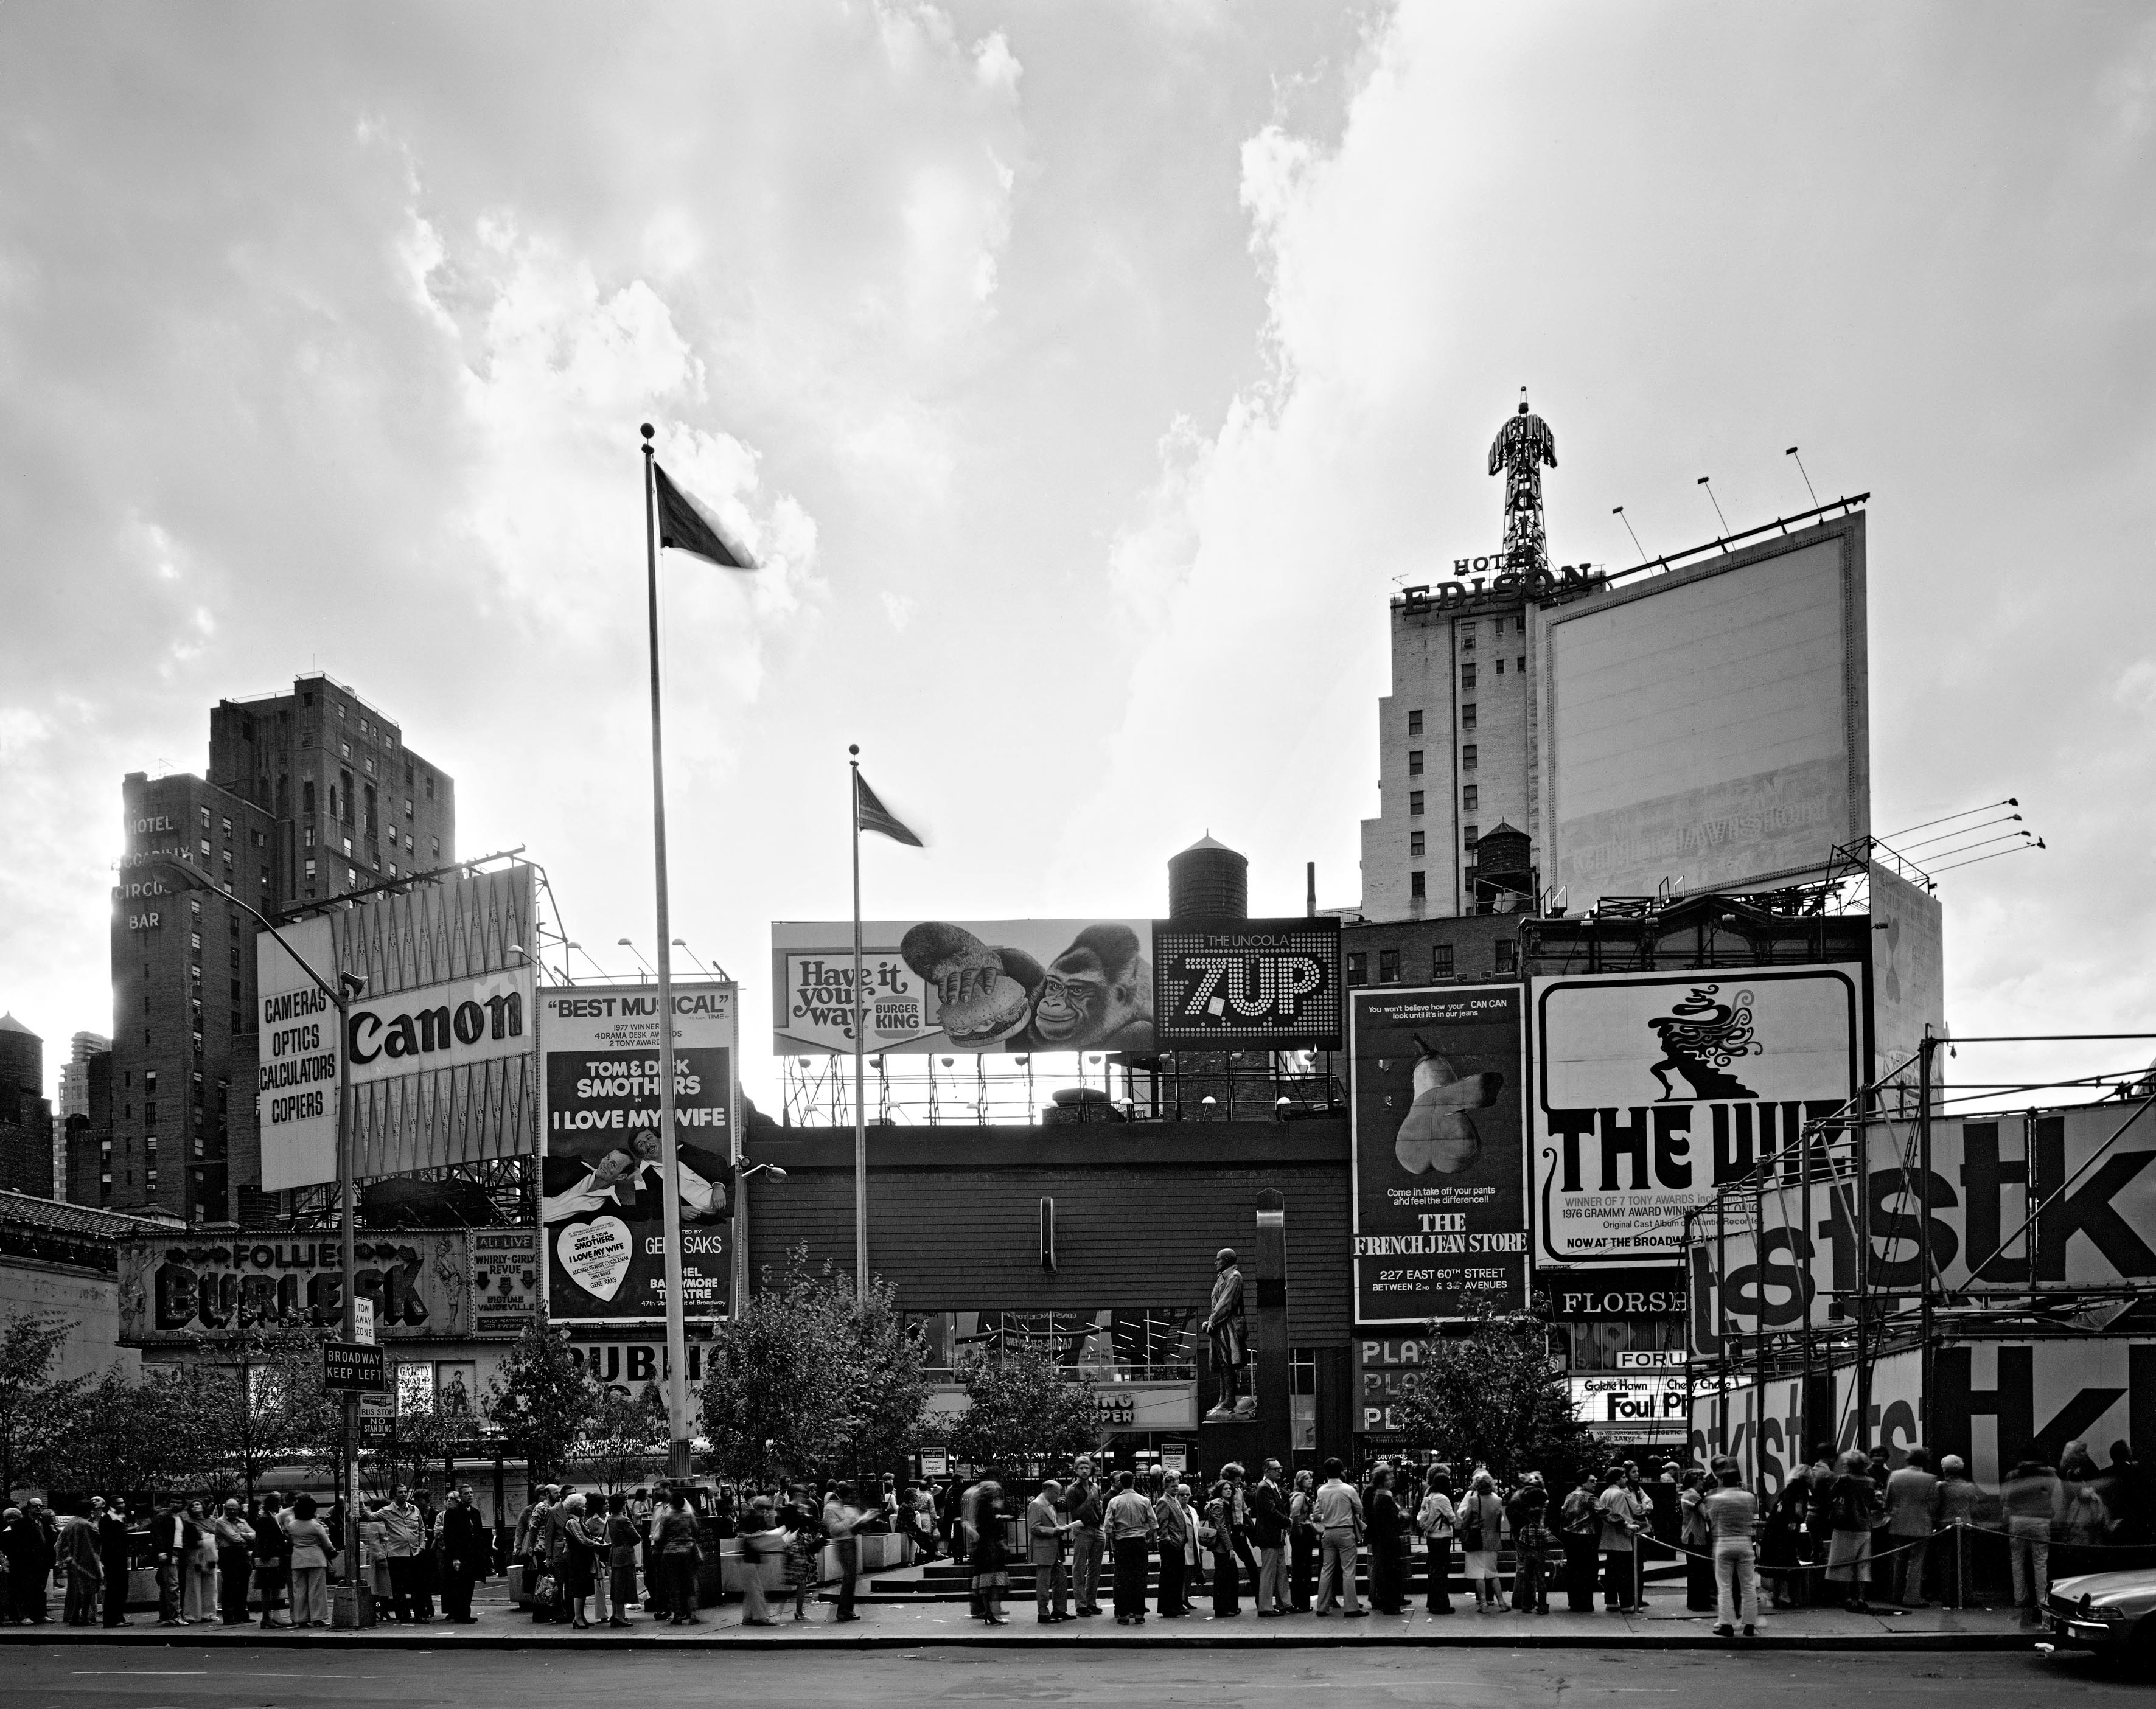 Times Square at Duffy Square, 1977.